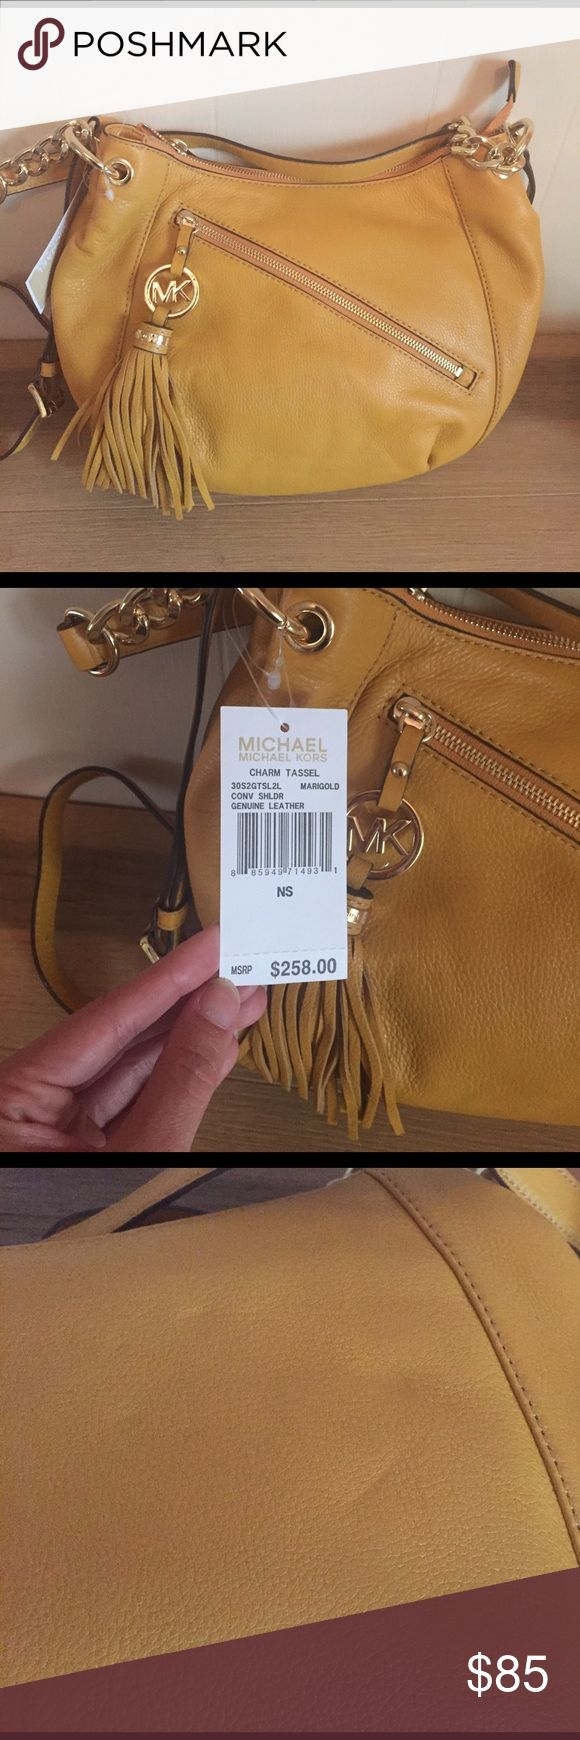 Michael Kors charm tassel purse Brand new with tags. Color is marigold. Has an adjustable cross body strap as well as handles. Comes with a Dustbag. Slight scuffing due to storage. Price firm Michael Kors Bags Crossbody Bags